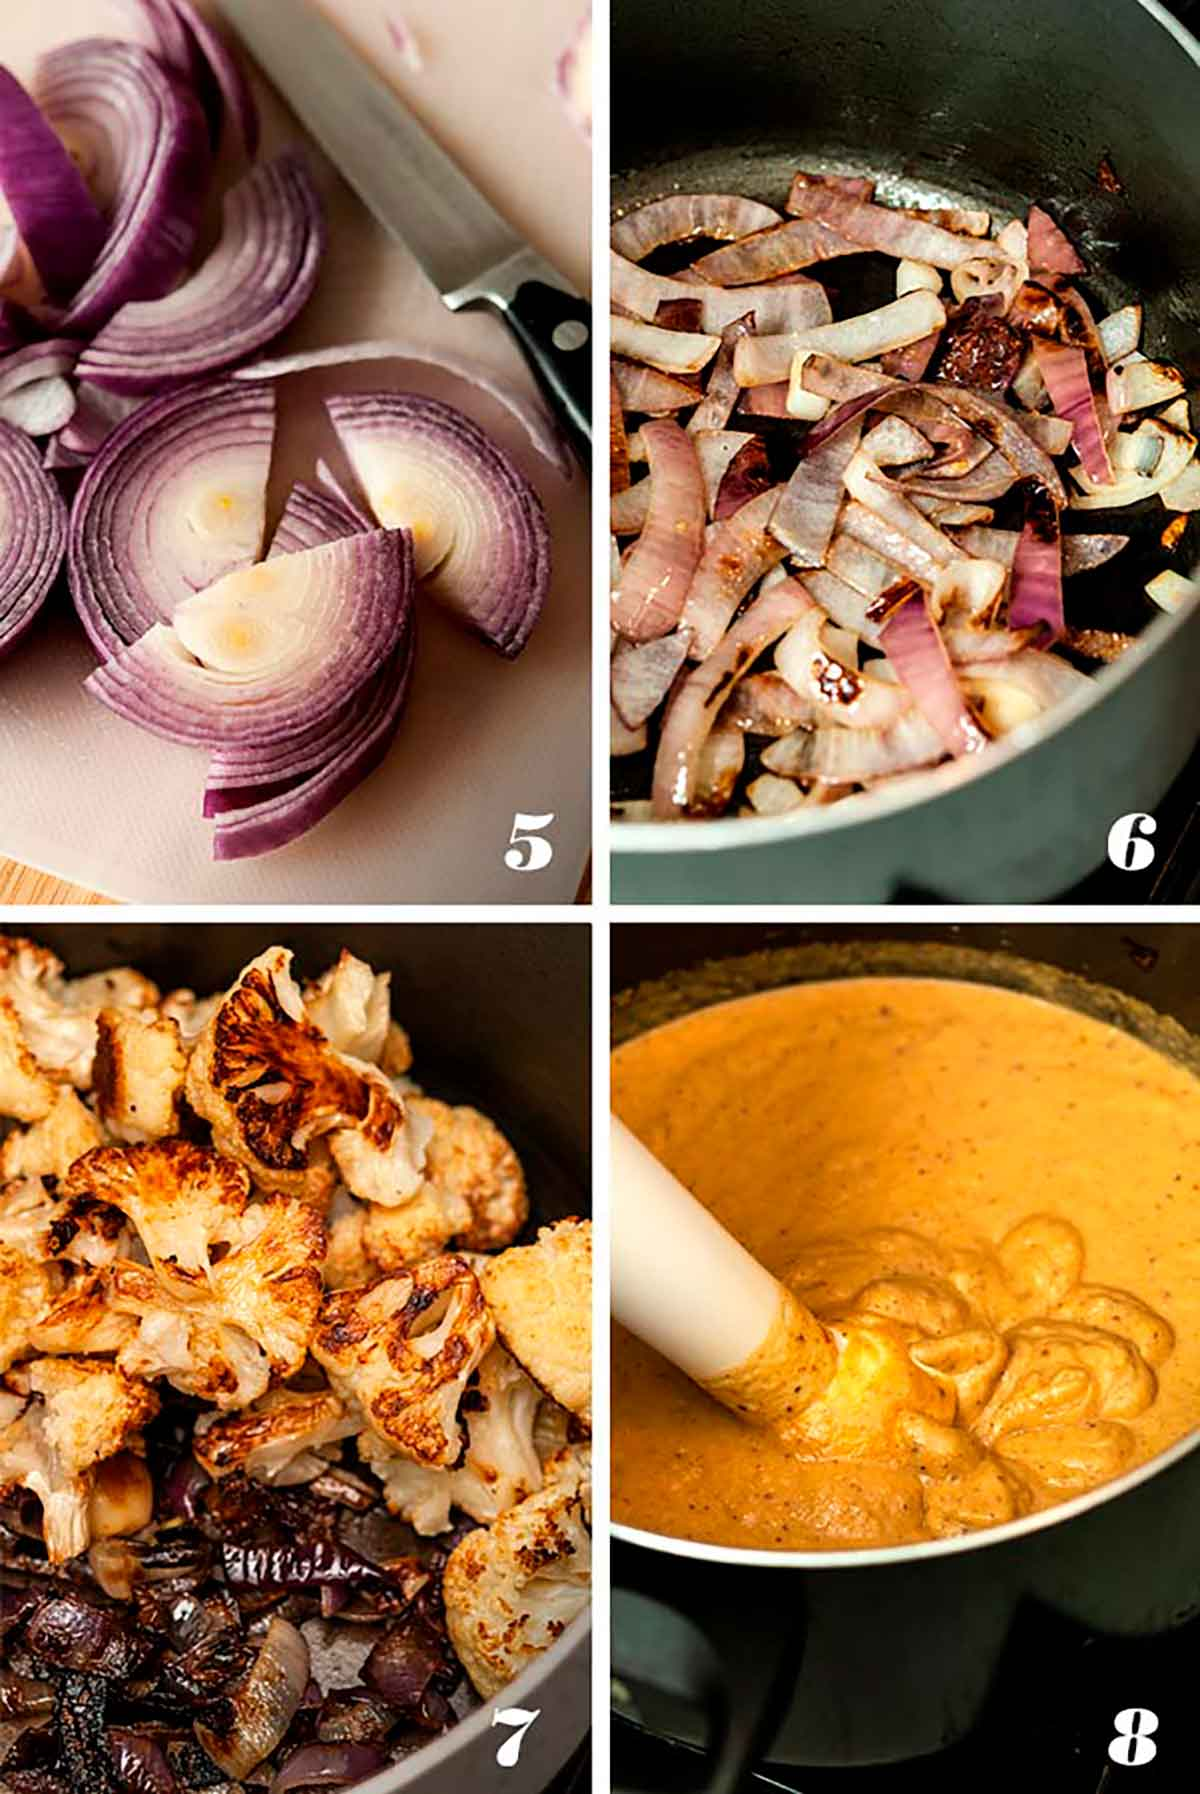 A collage of 4 numbered images showing how to brown onions and combine ingredients into soup.